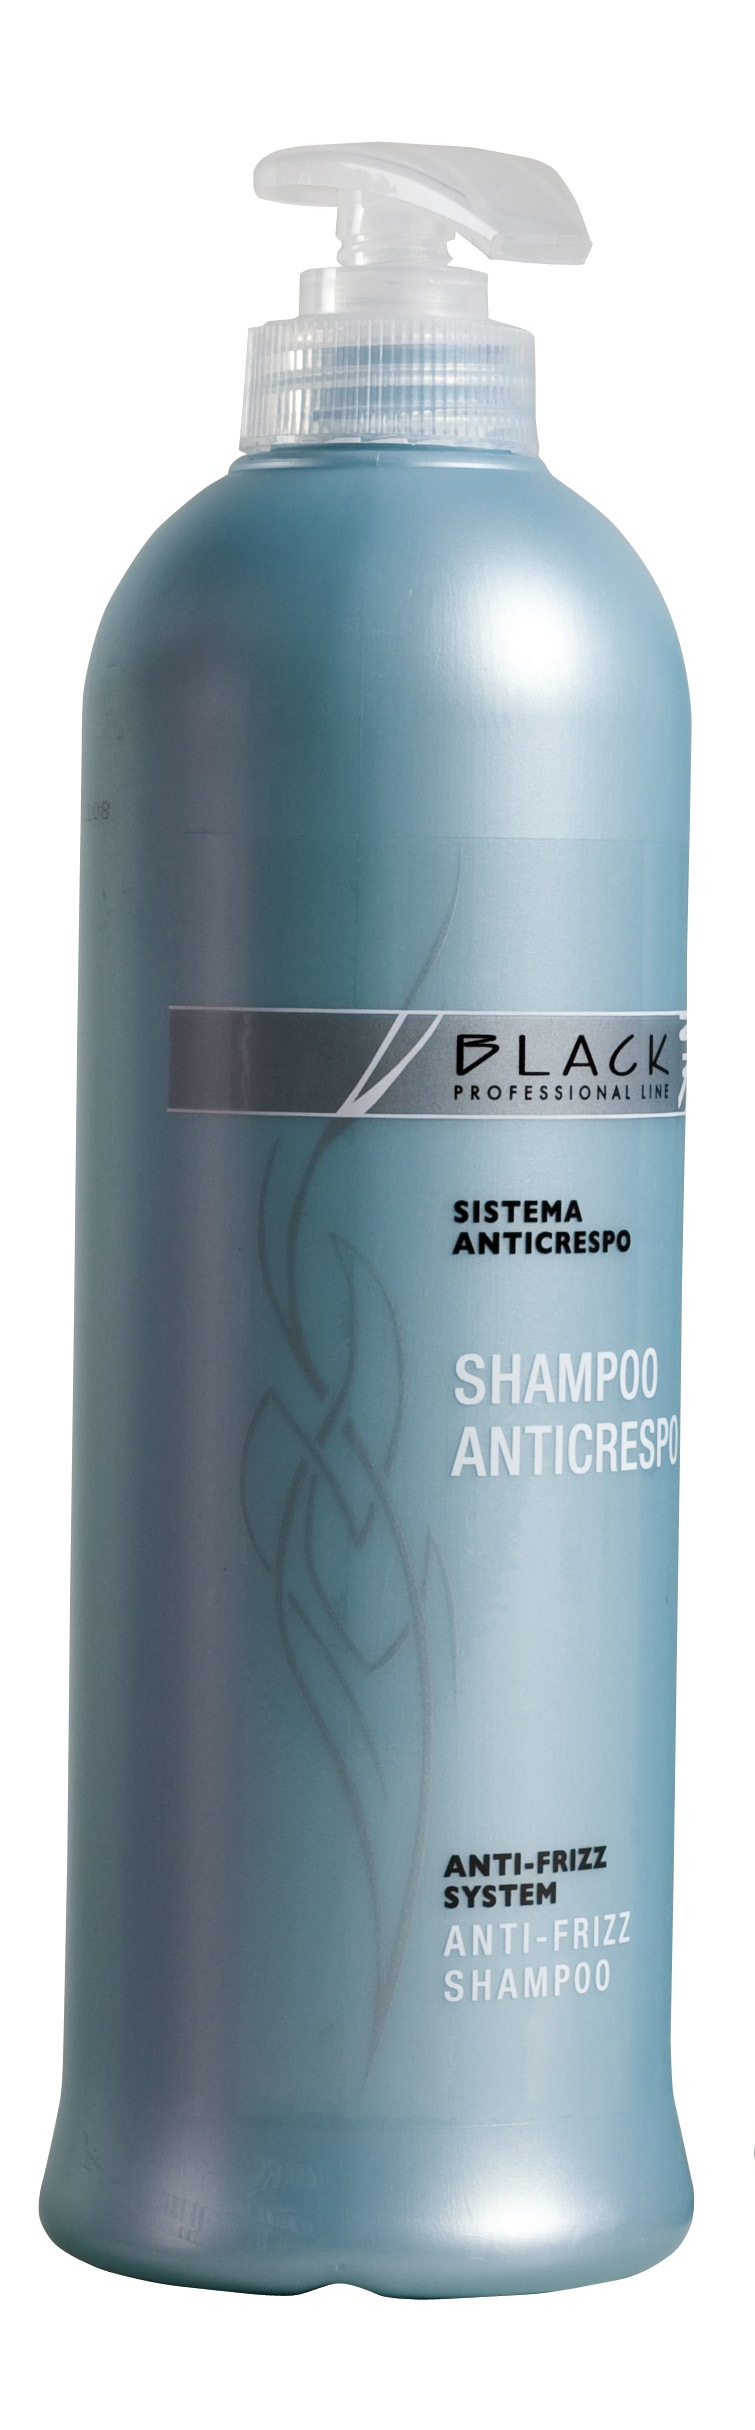 Black Shampoo Anticrespo 500 ml